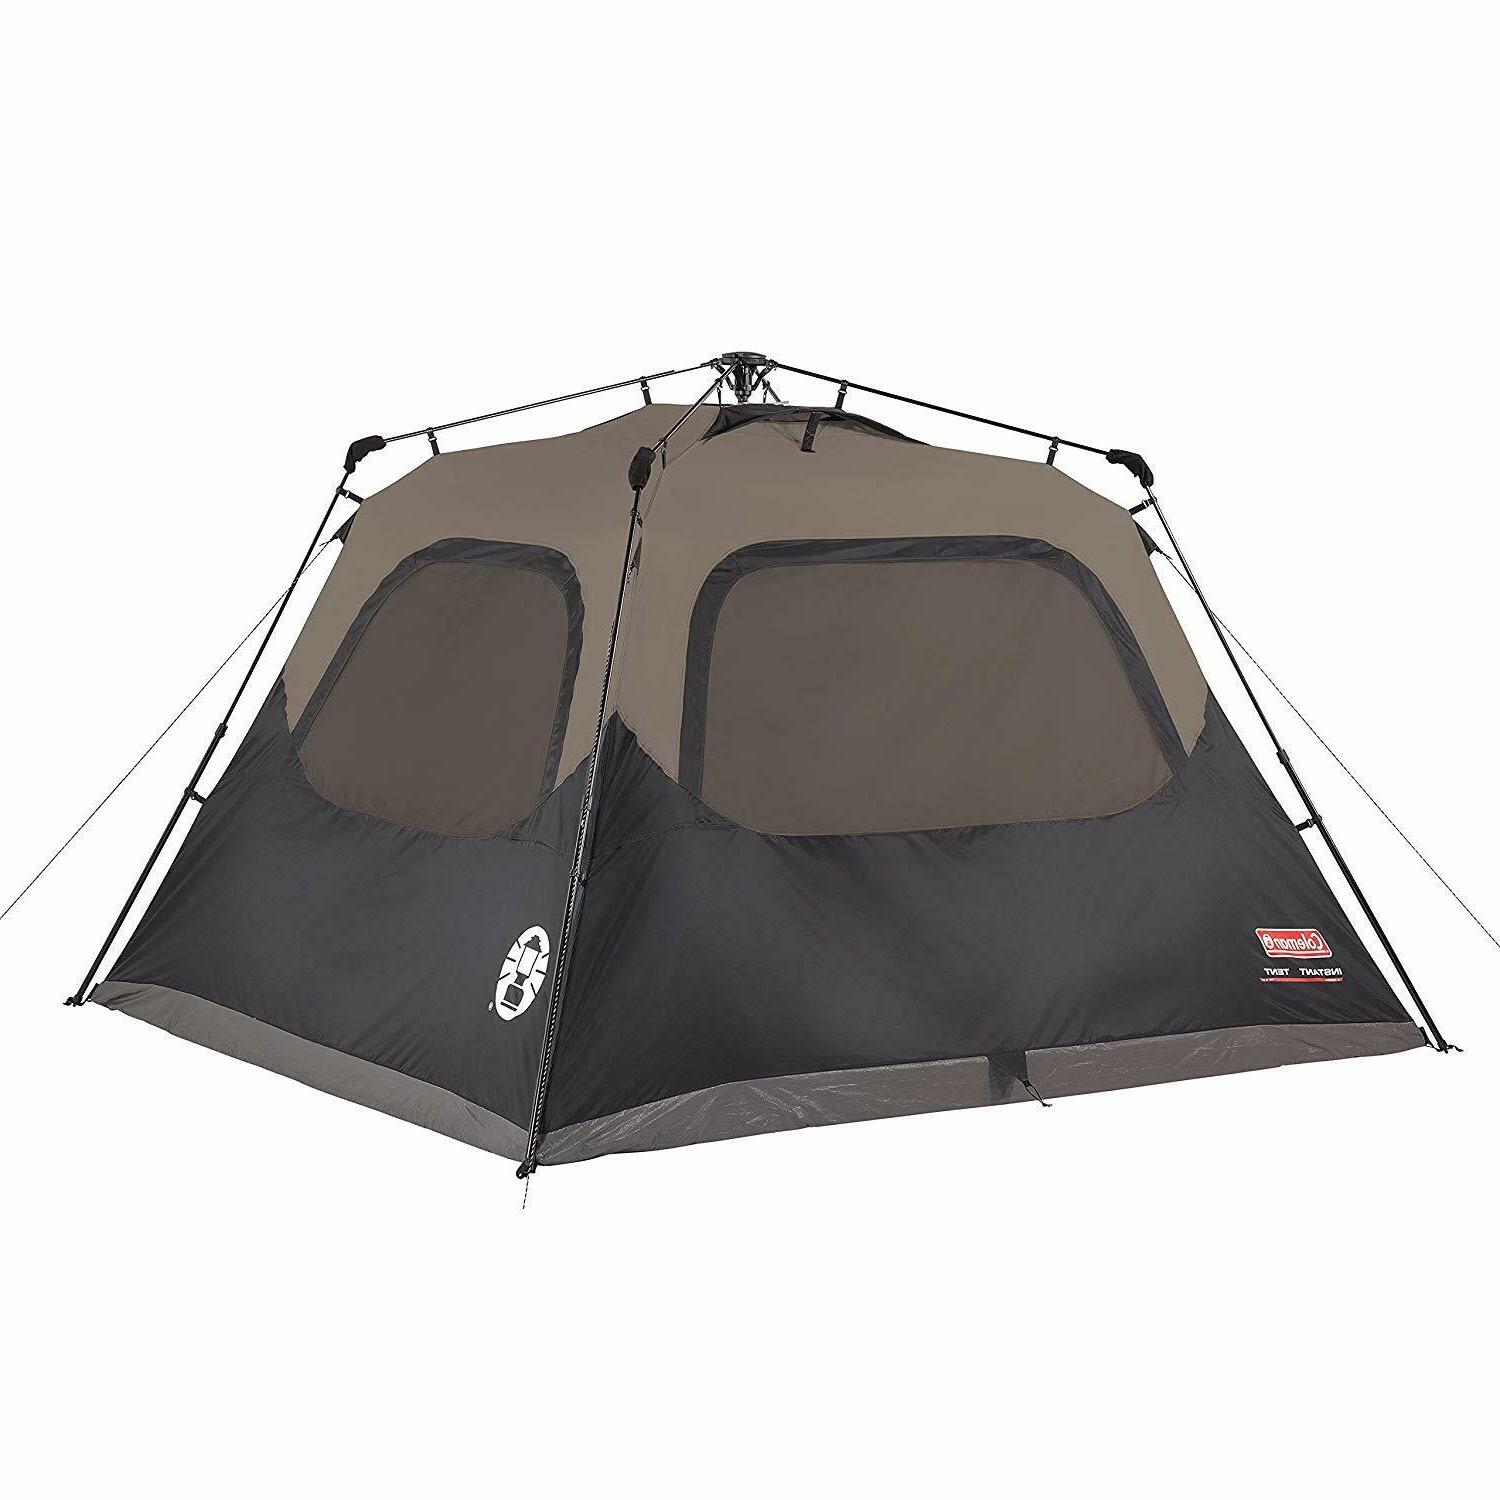 6 person cabin tent with instant setup